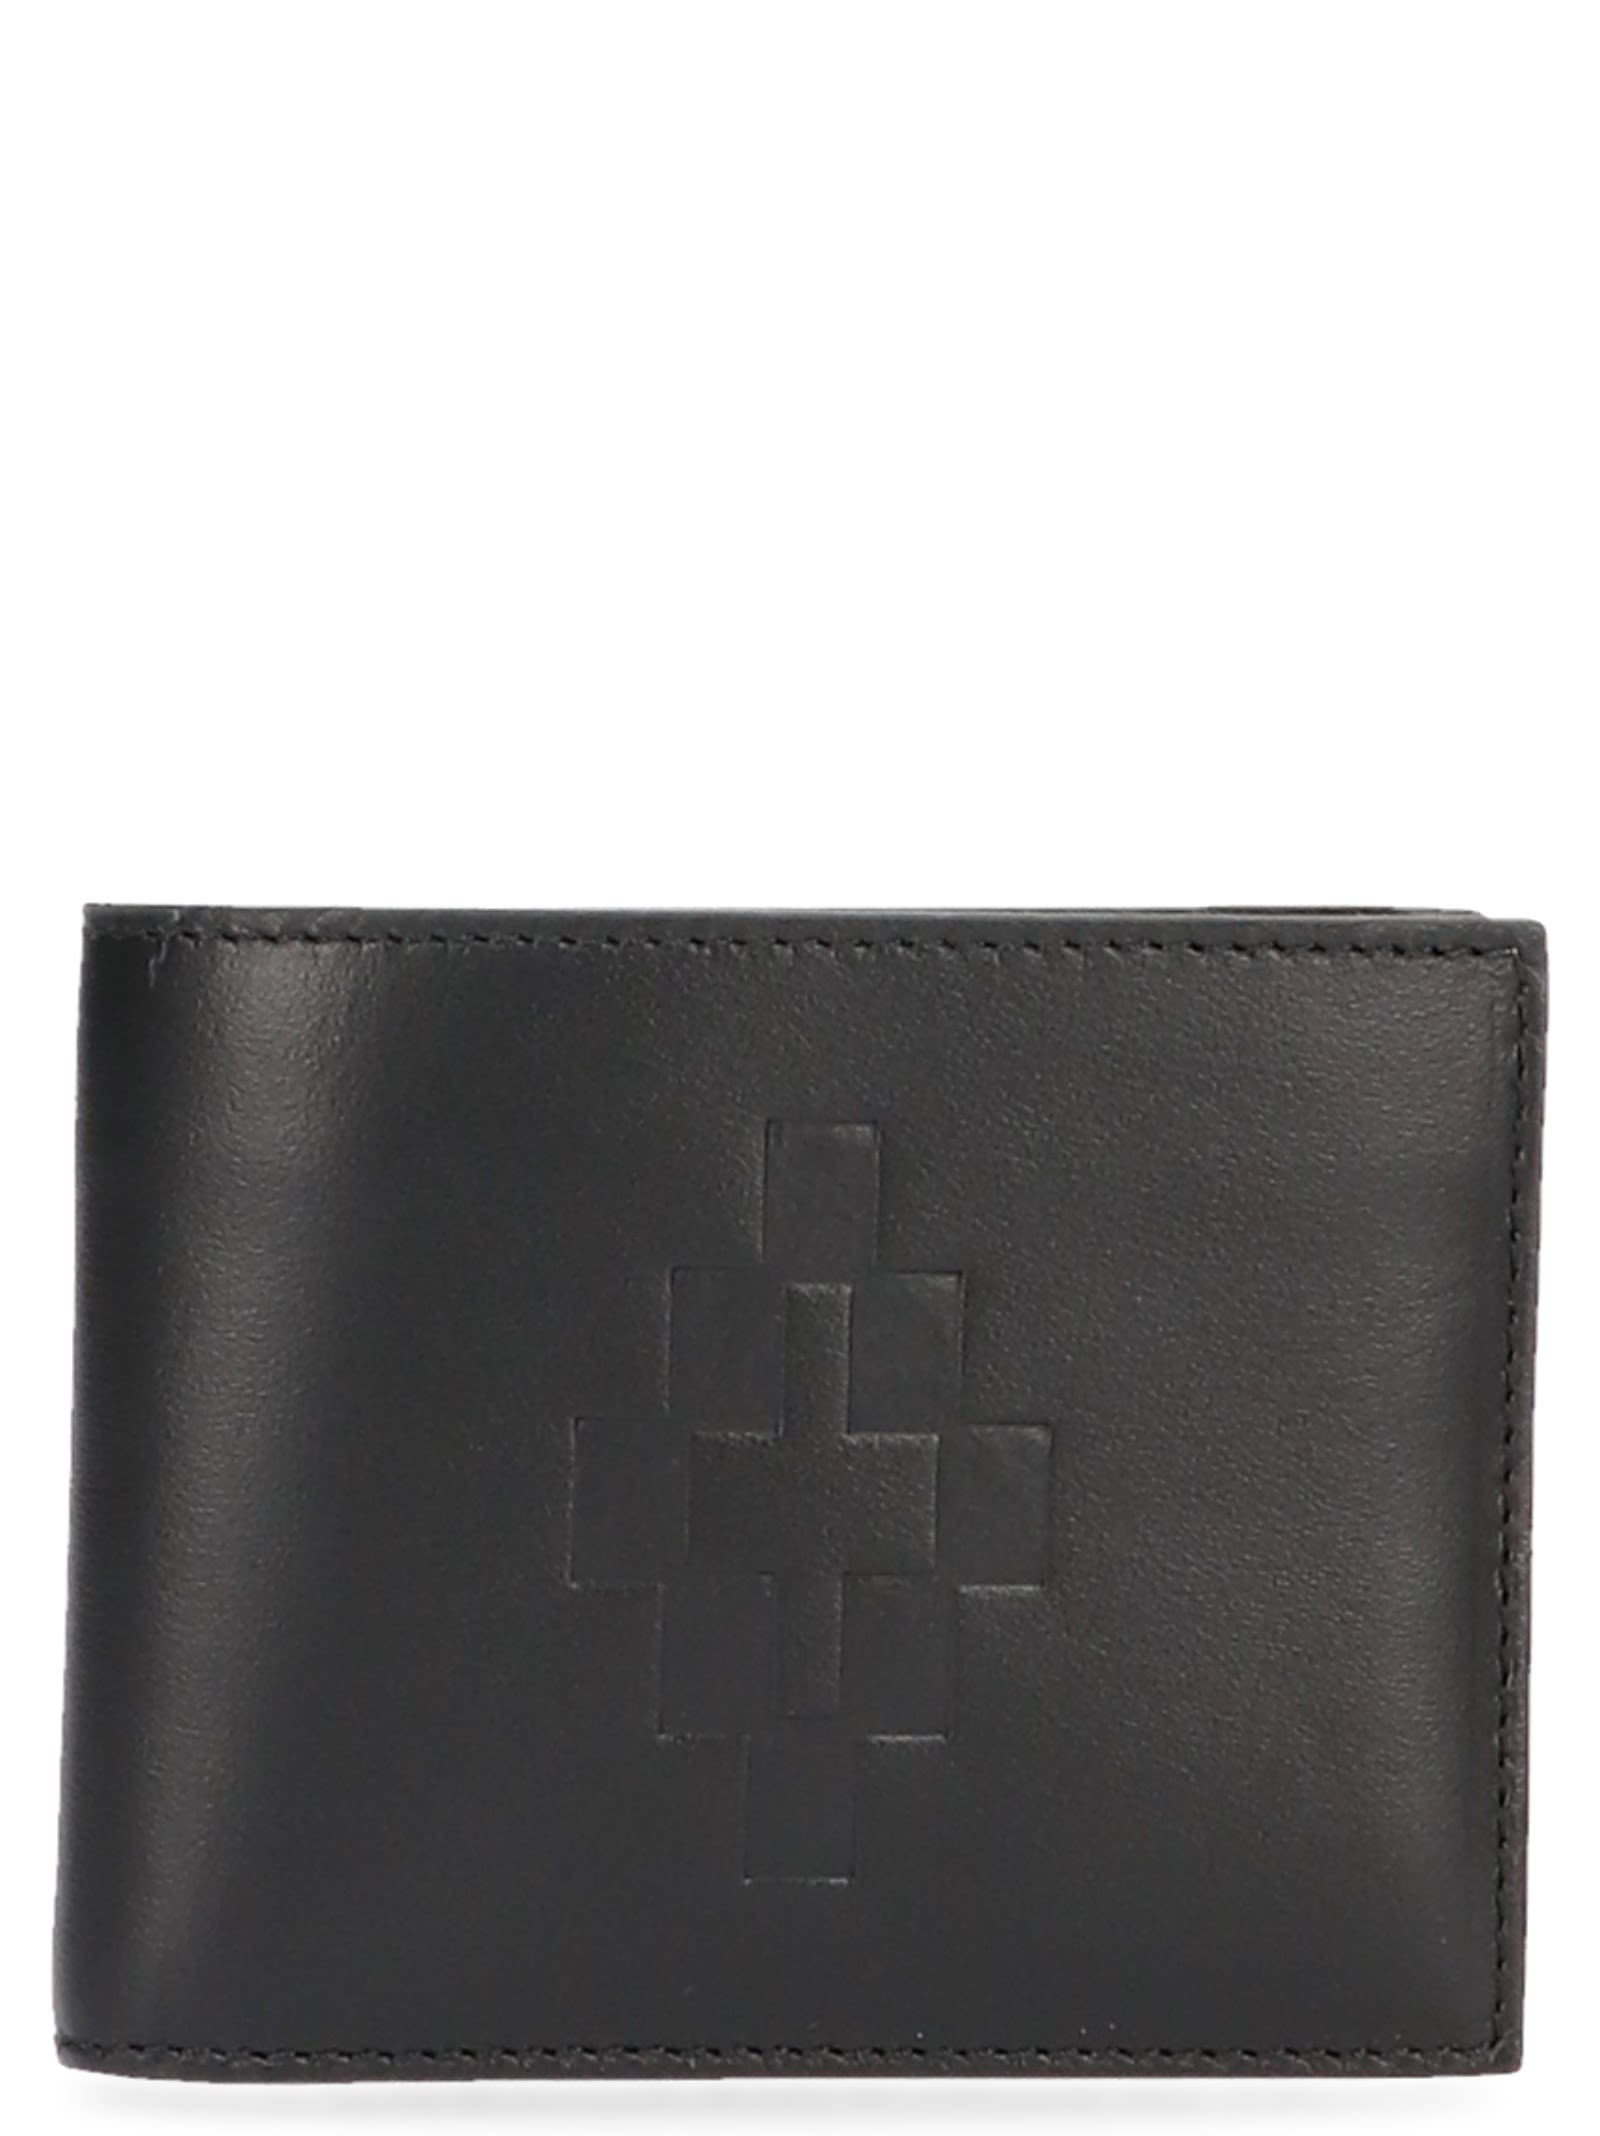 Marcelo Burlon 'cross' Wallet